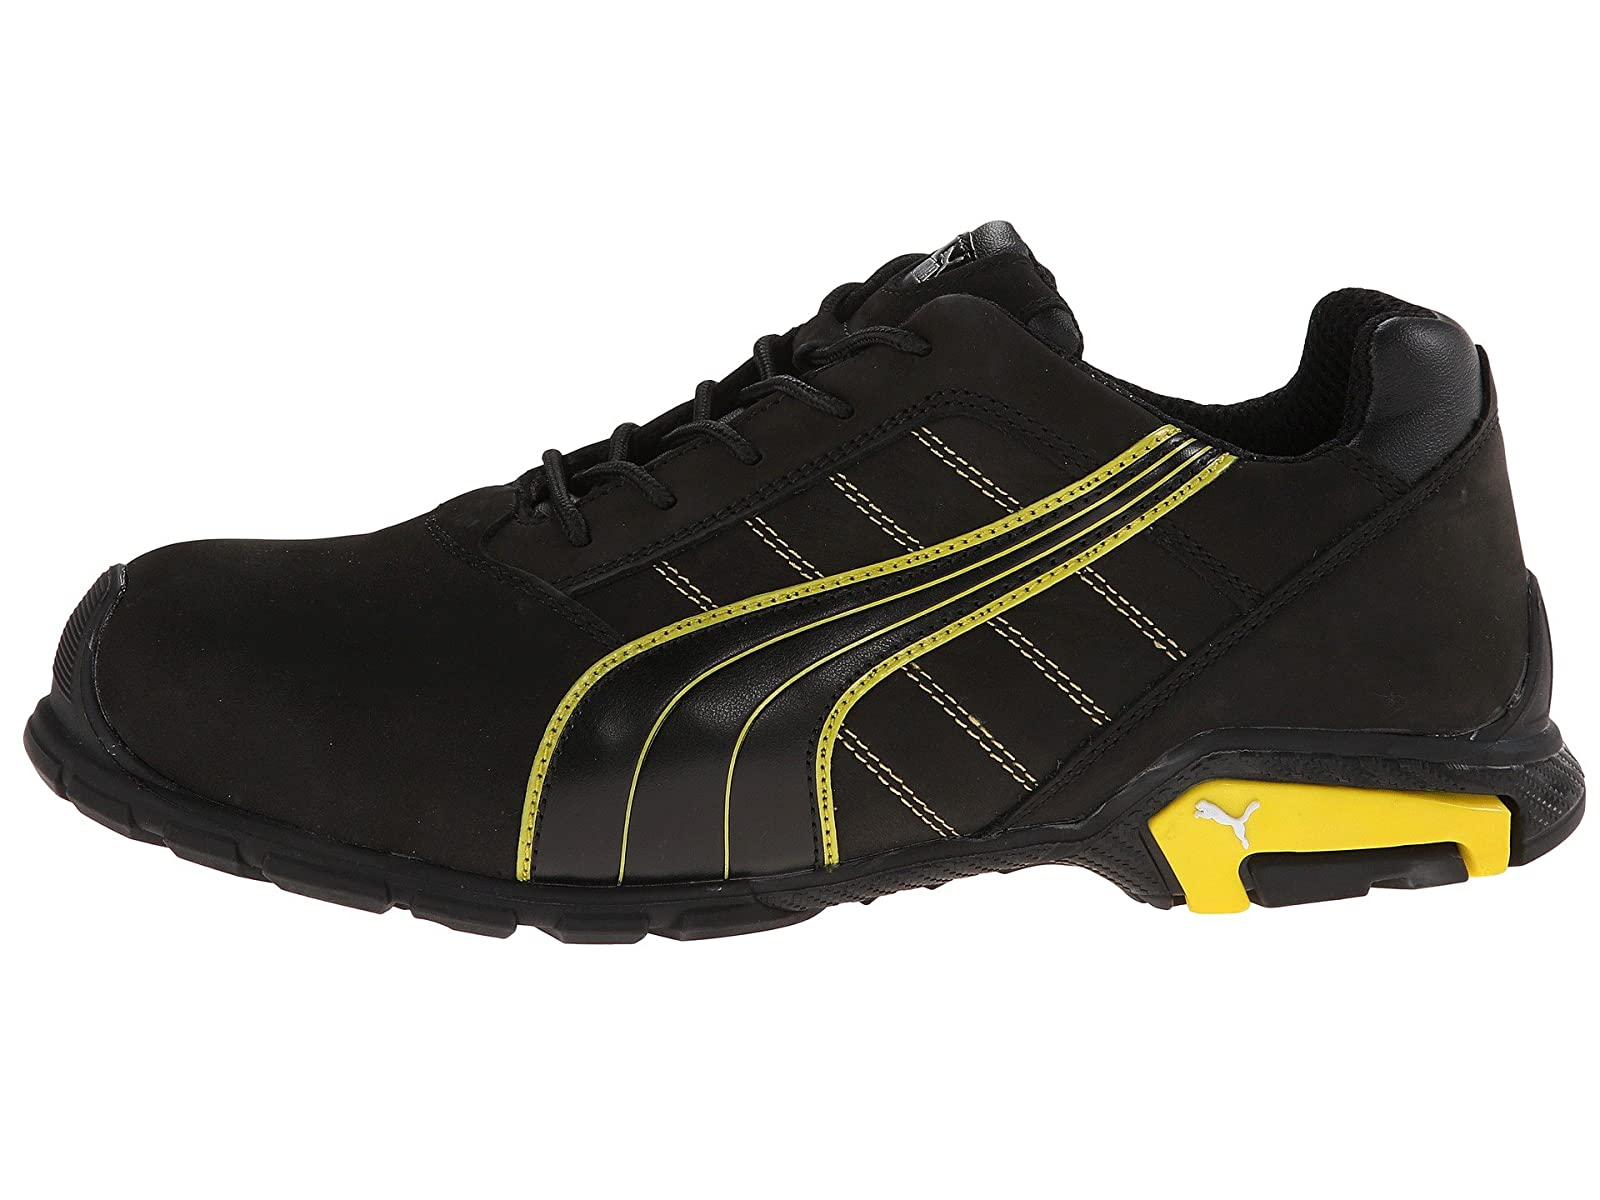 Man-039-s-Sneakers-amp-Athletic-Shoes-PUMA-Safety-Metro-Amsterdam-SD thumbnail 5